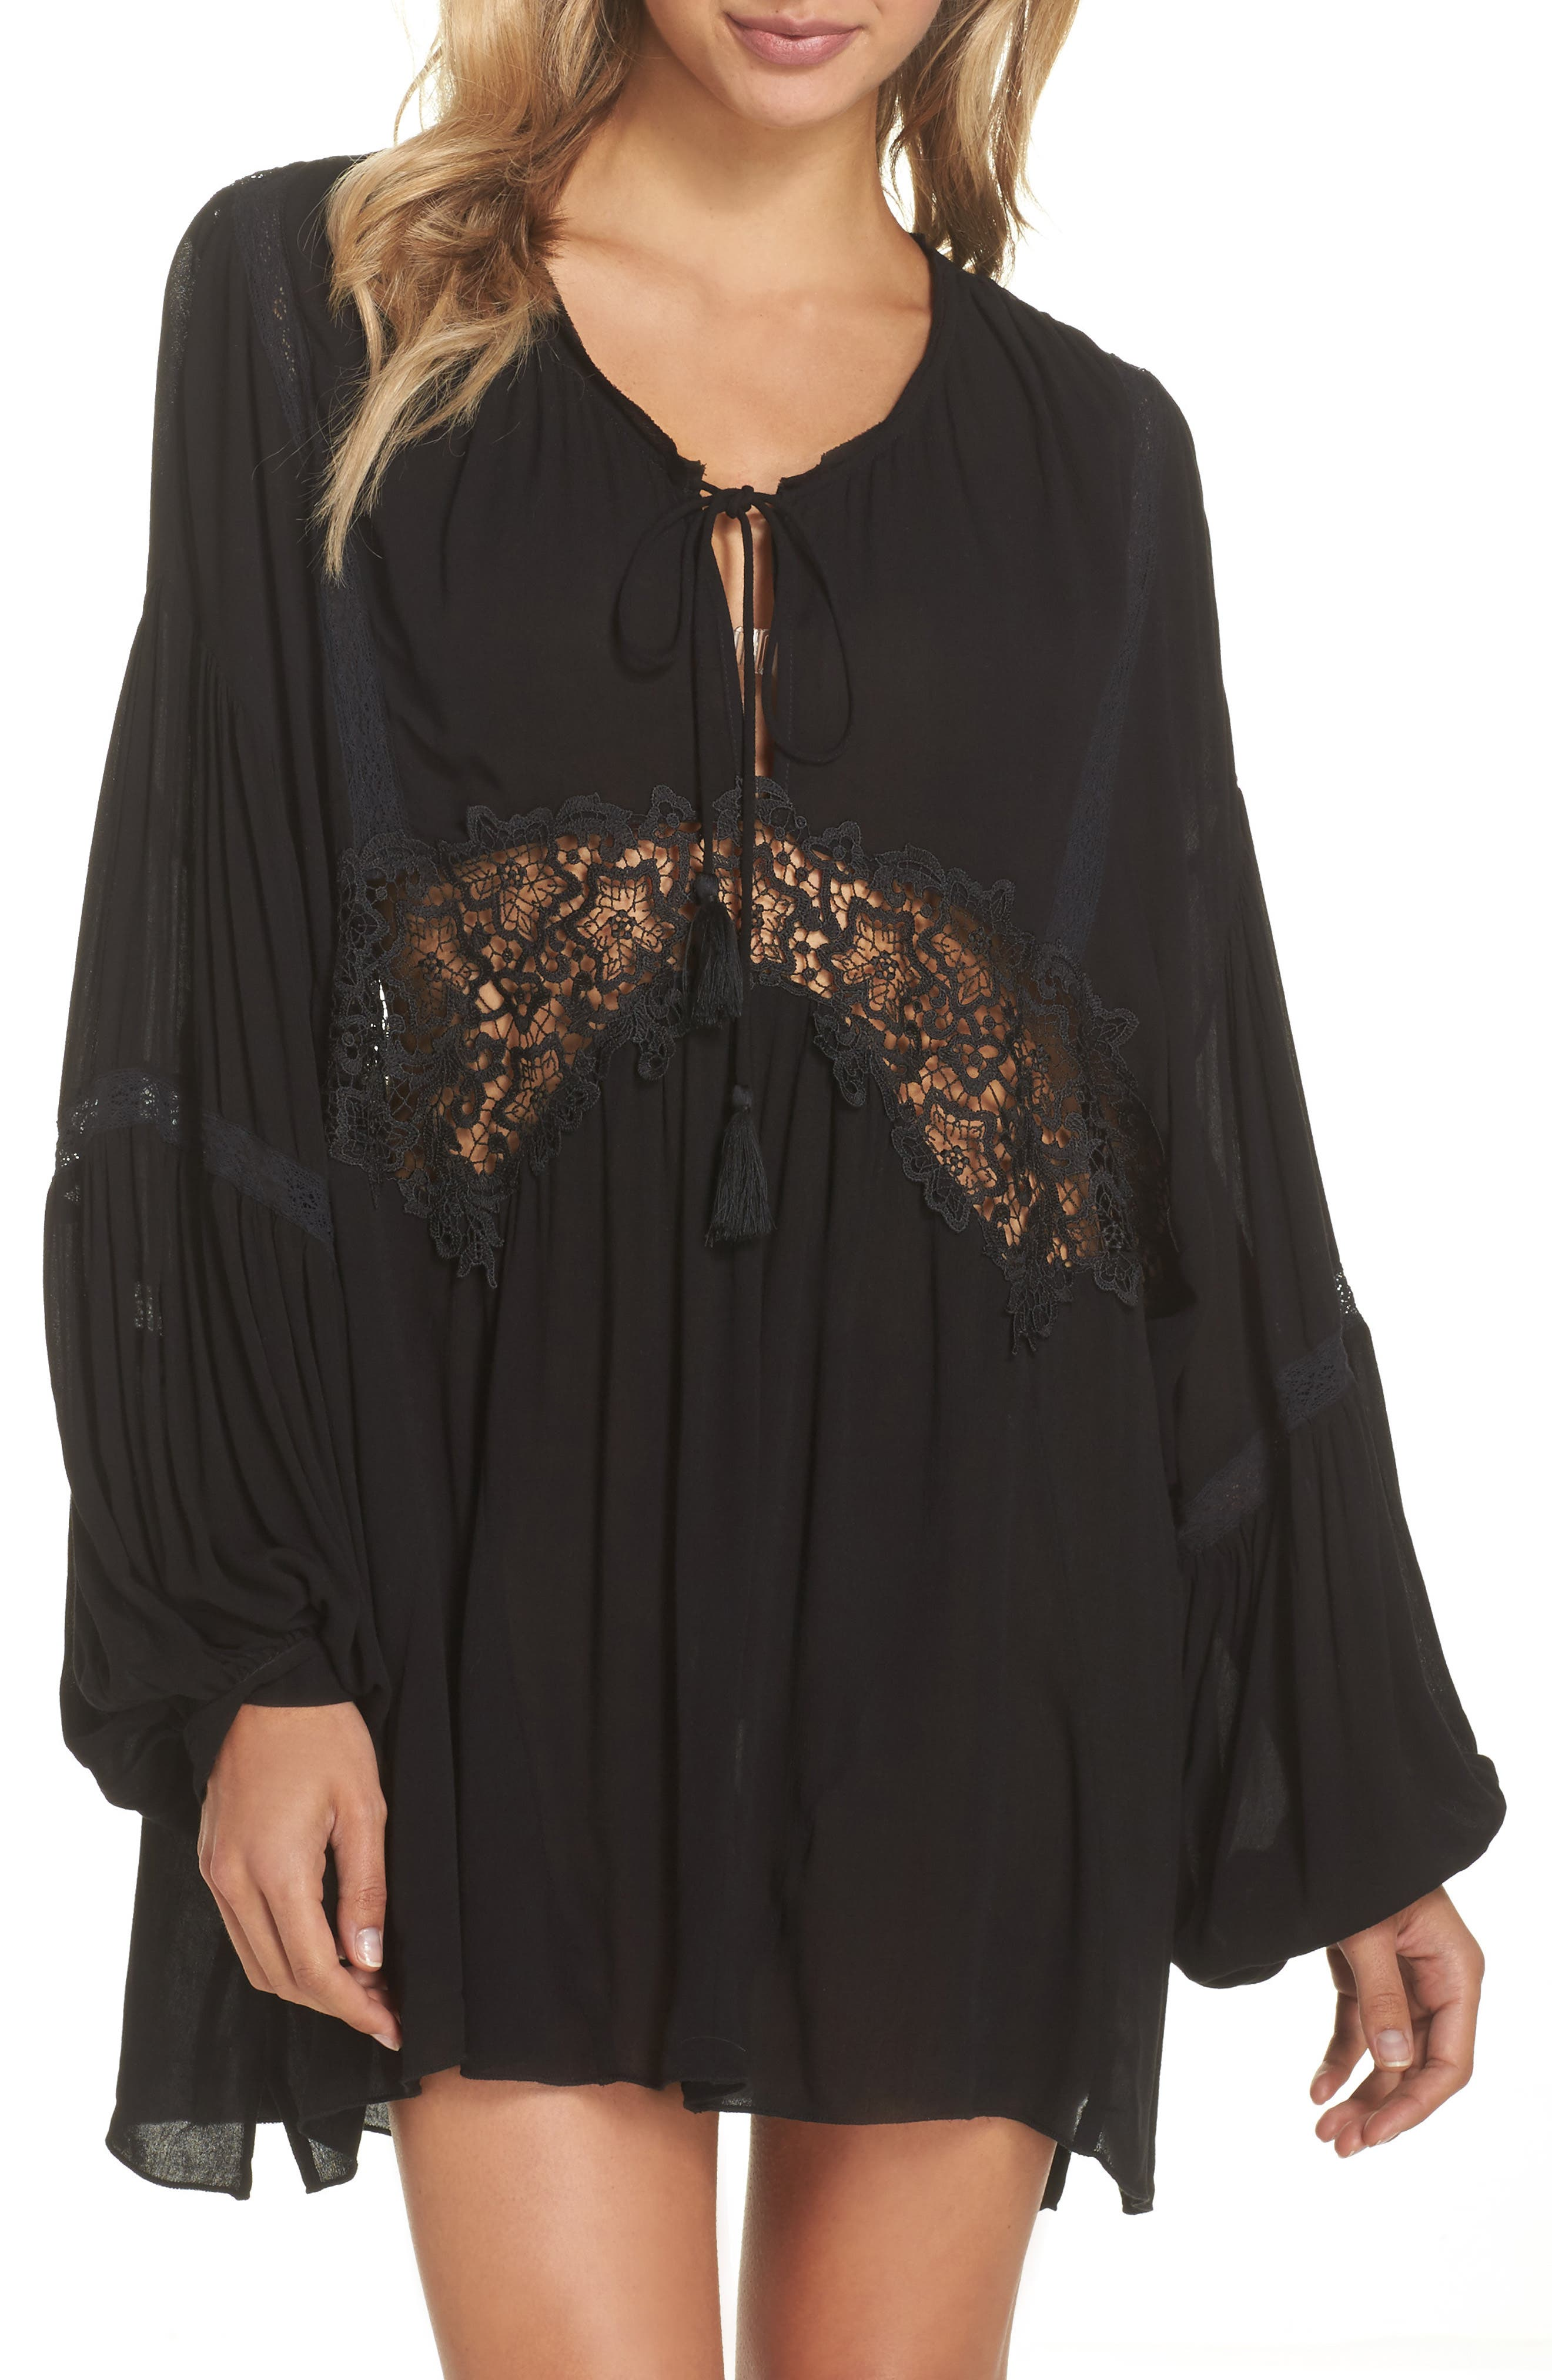 Intimately FP Sleepin' 'n' Dreamin' Lace Inset Top,                         Main,                         color, Black